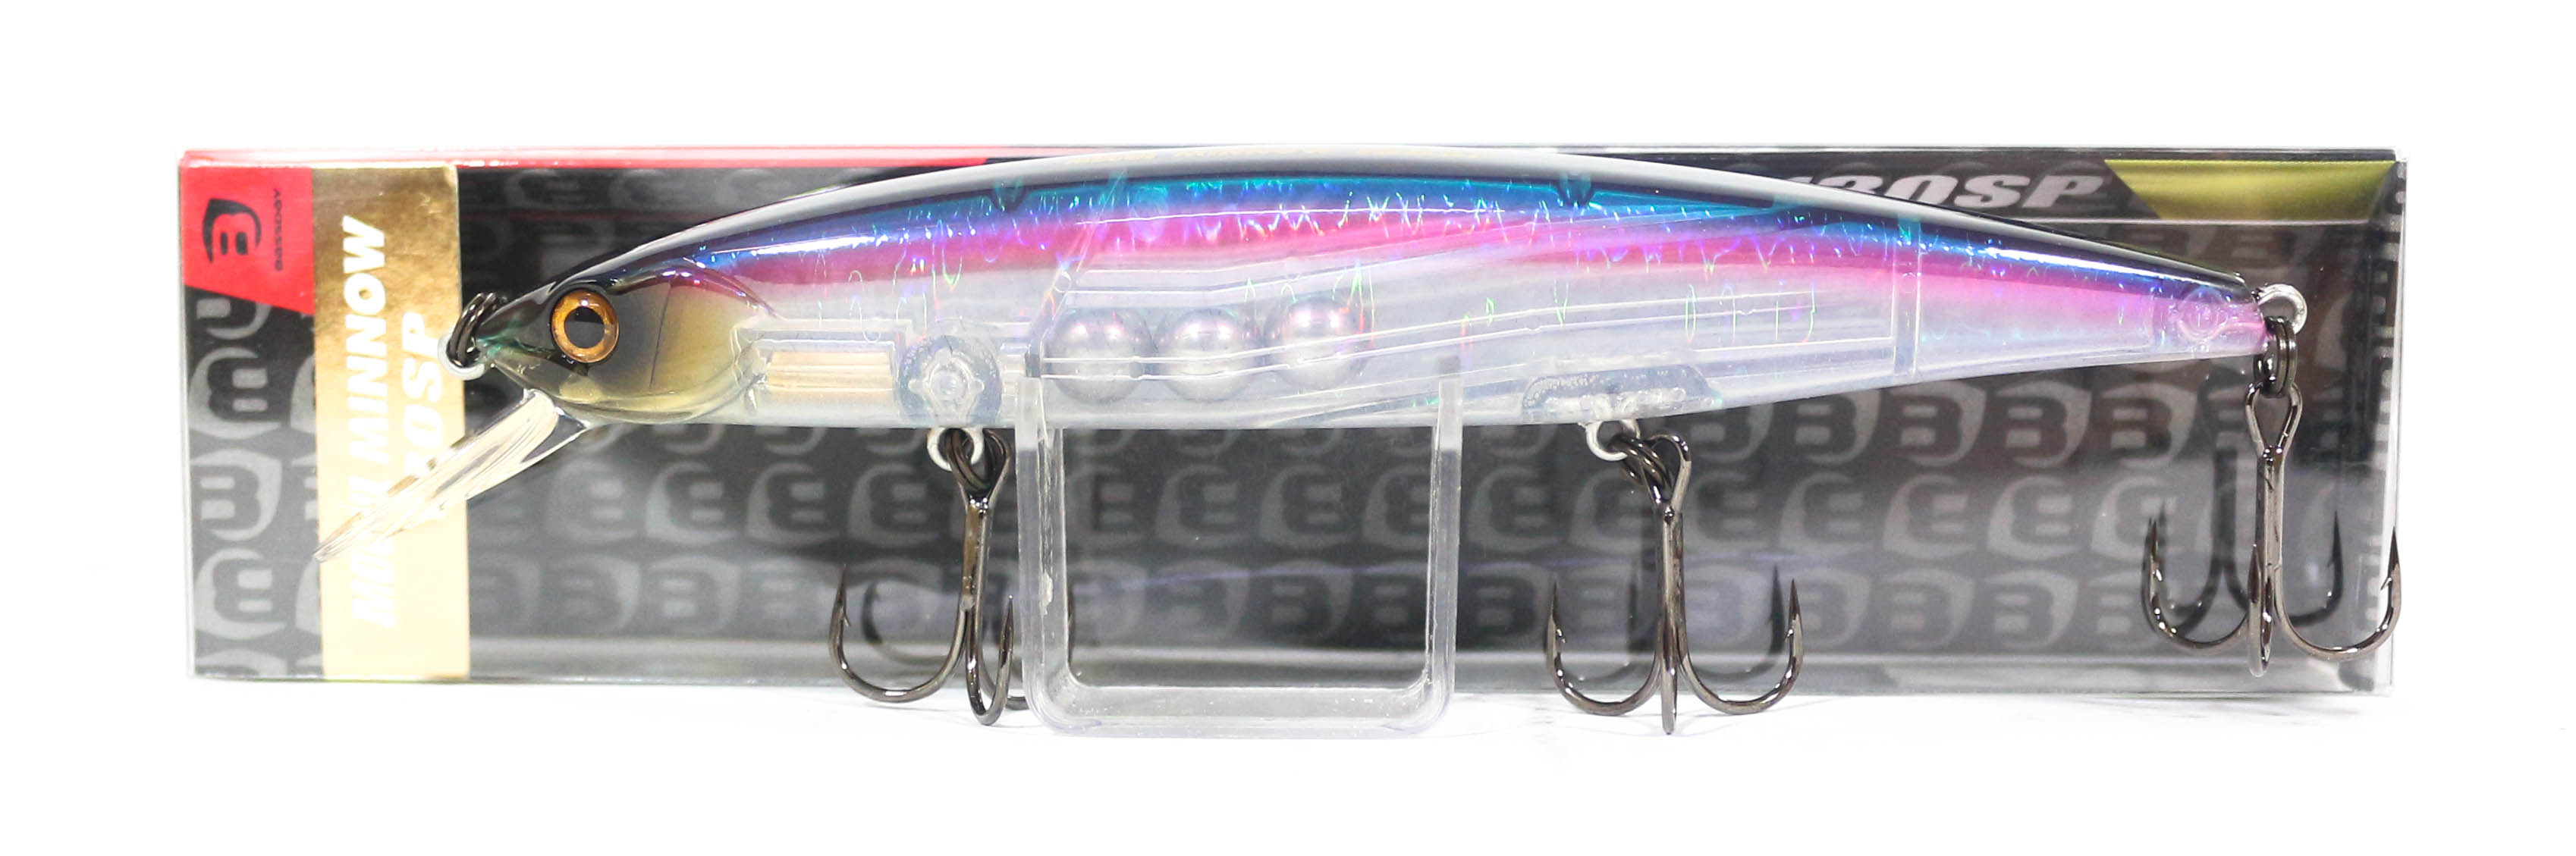 Bassday Mogul Minnow 130SP Suspend Lure 22.6 grams HF-51 (8043)